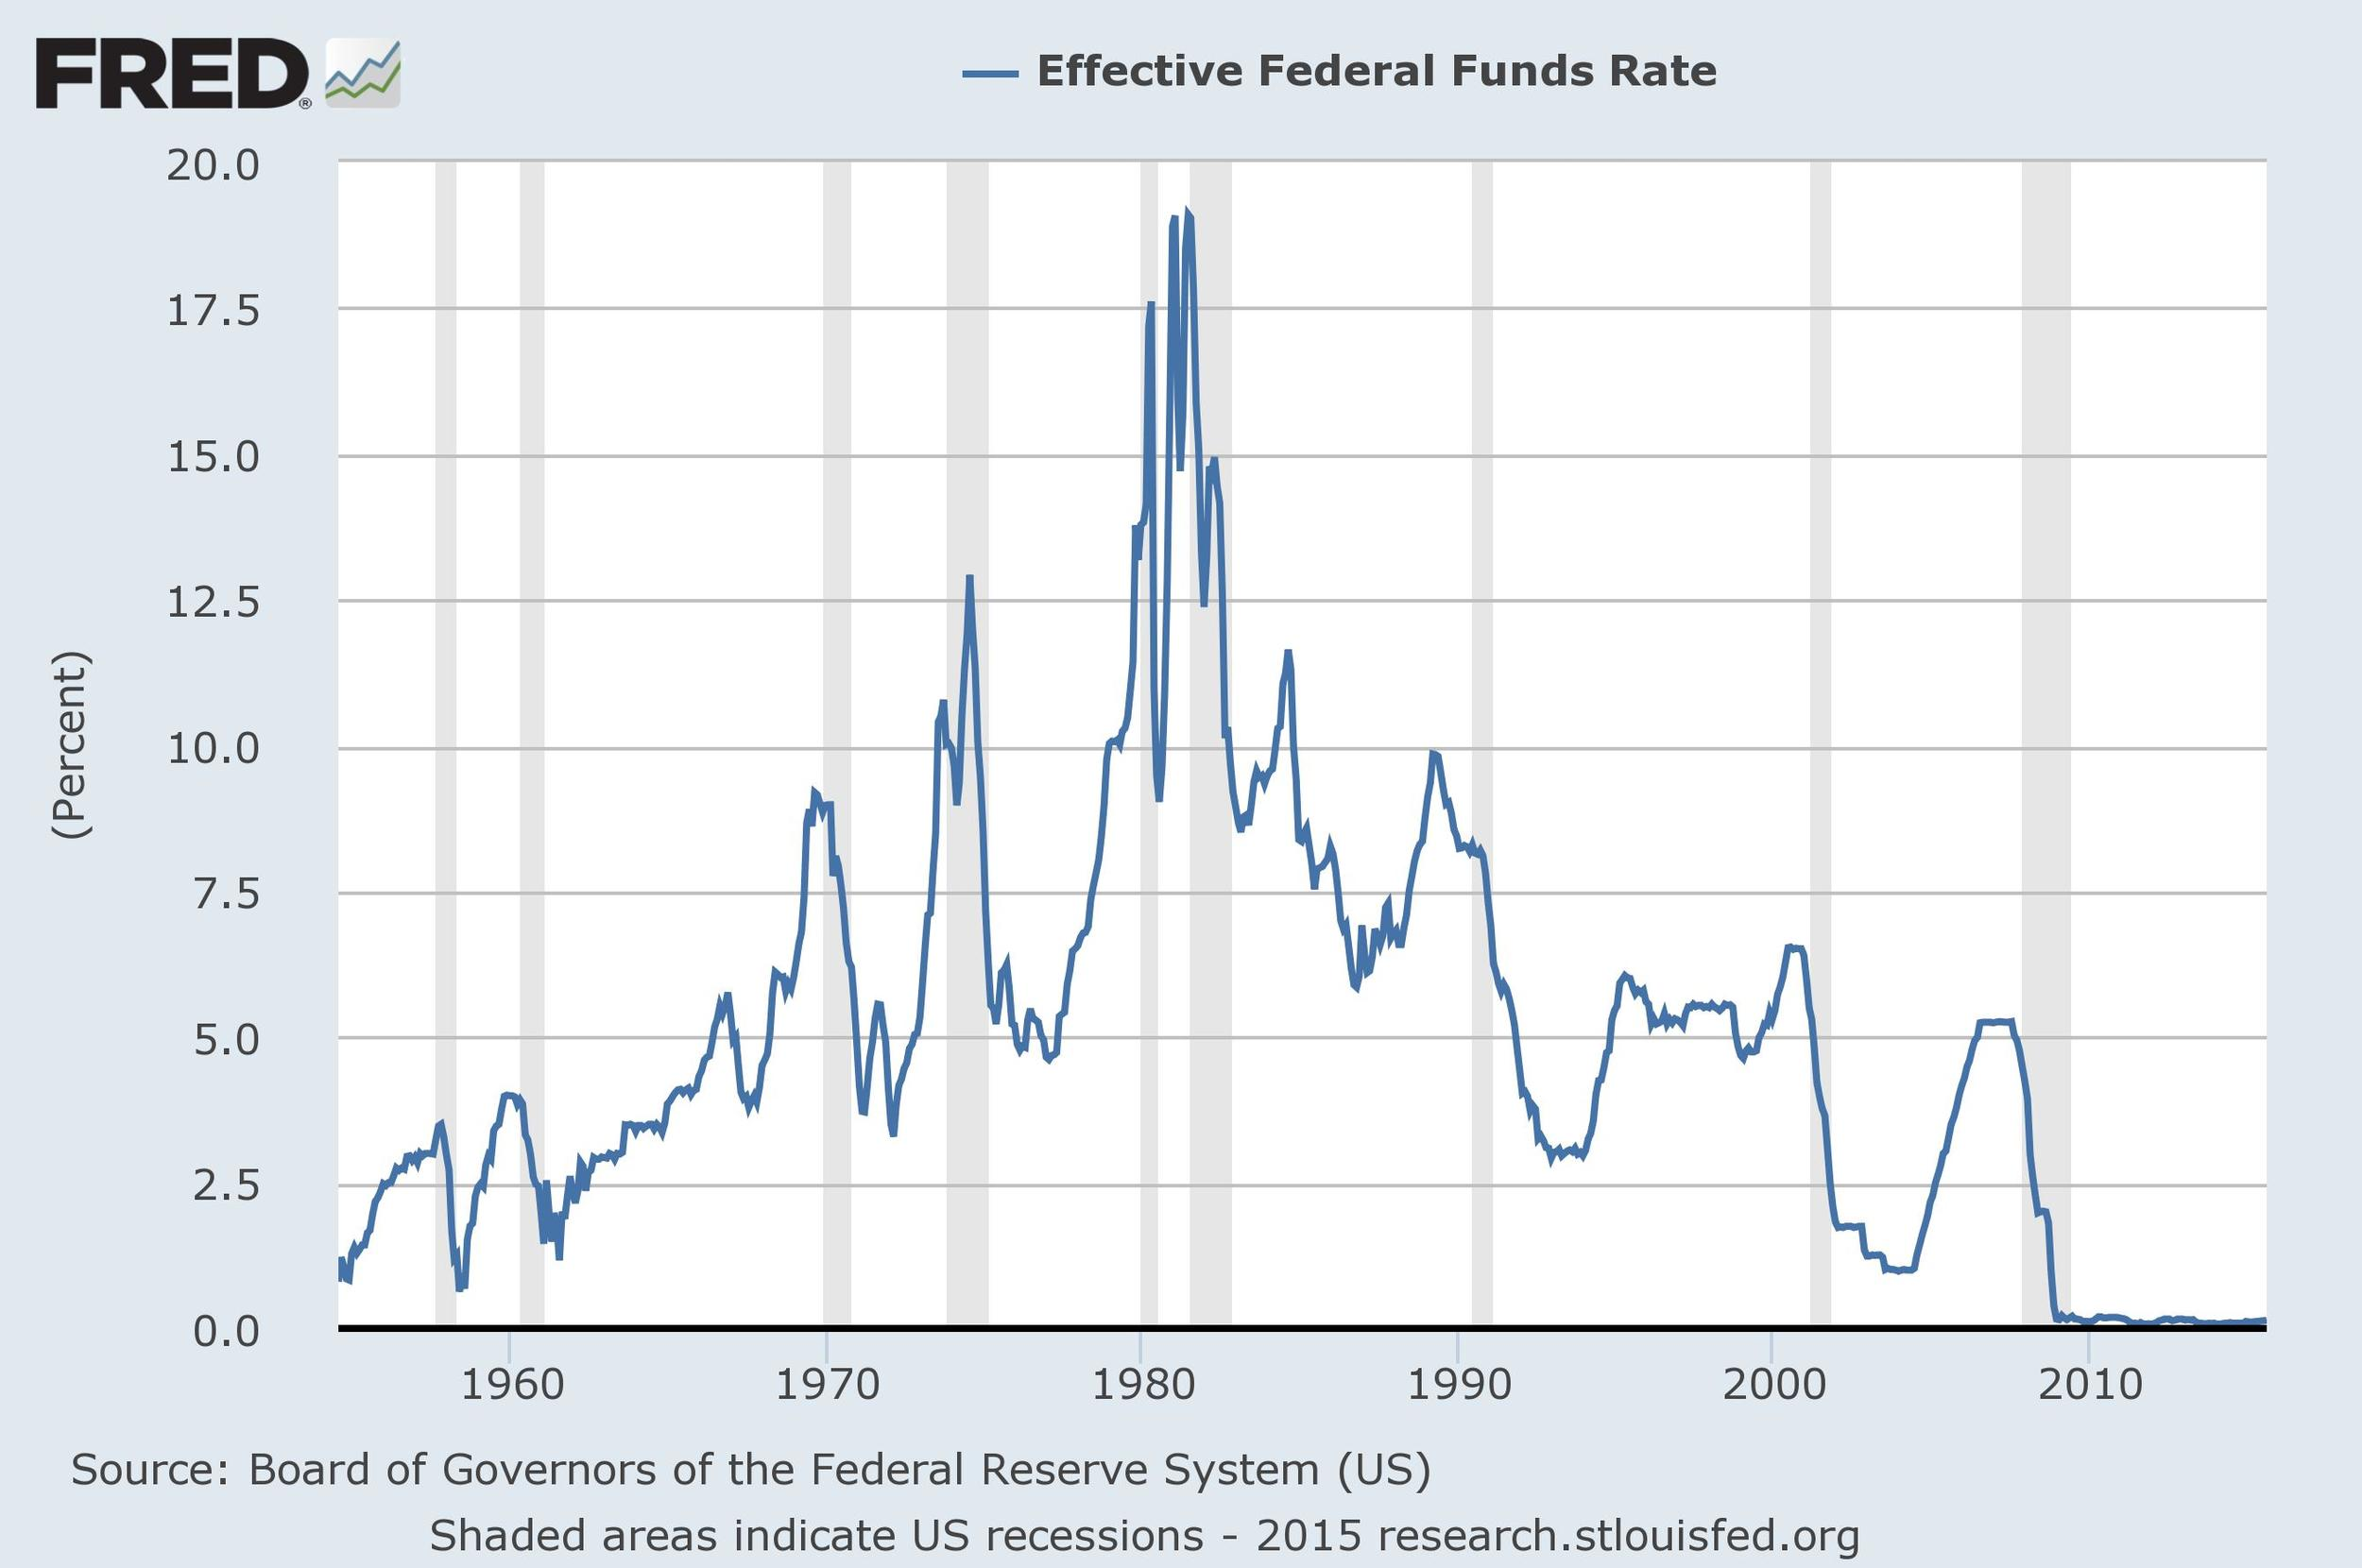 source: Board of Governors of the Federal Reserve, St. Louis Fed